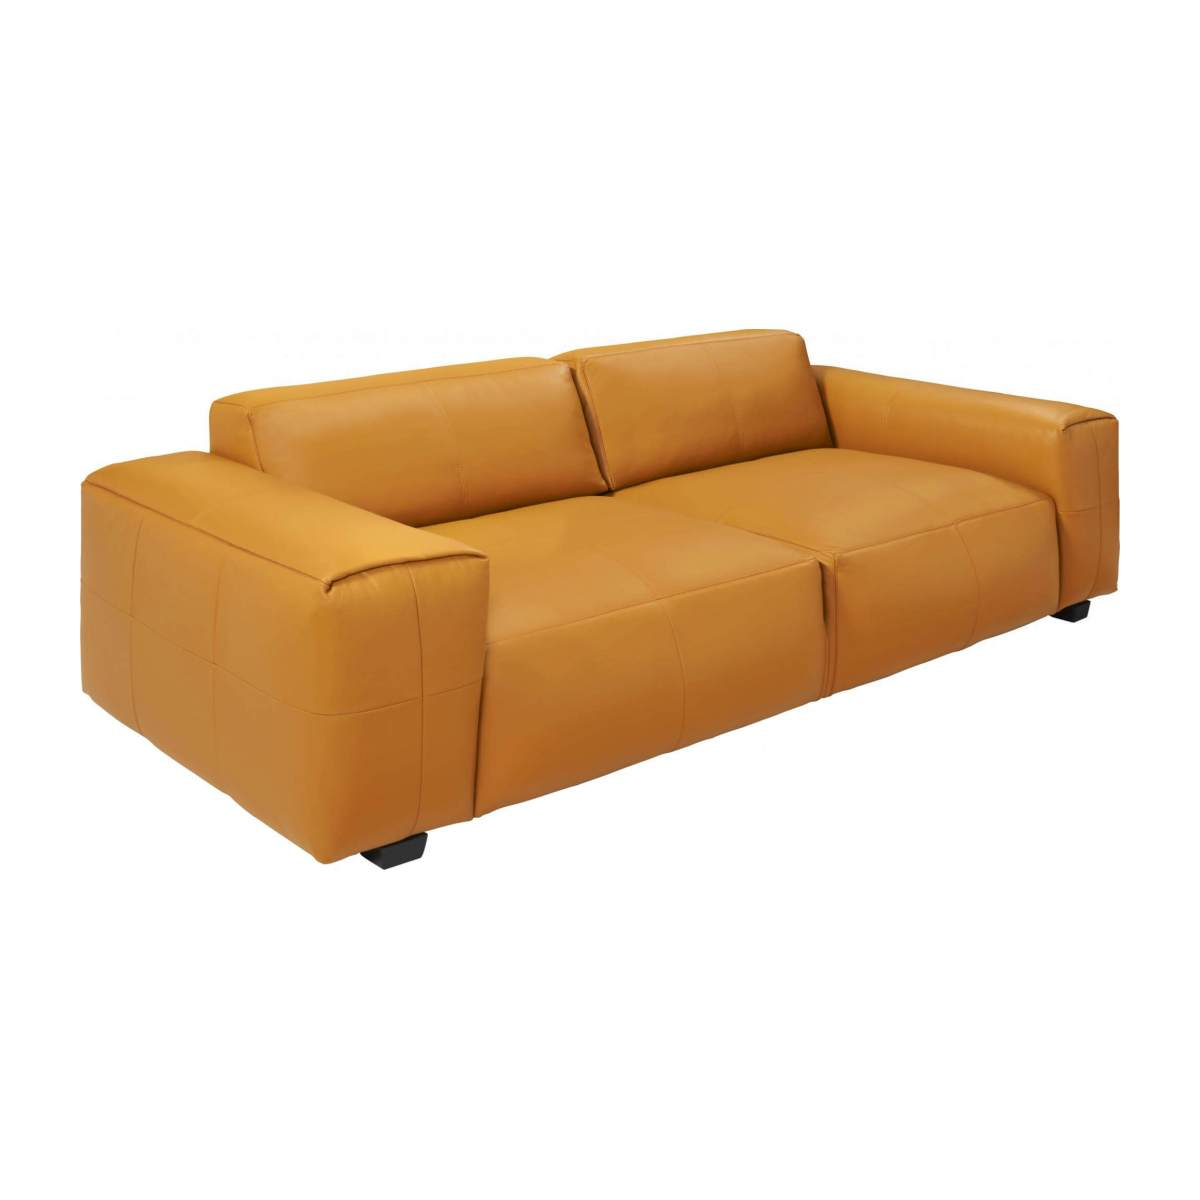 2 seater sofa in Savoy semi-aniline leather, cognac n°4